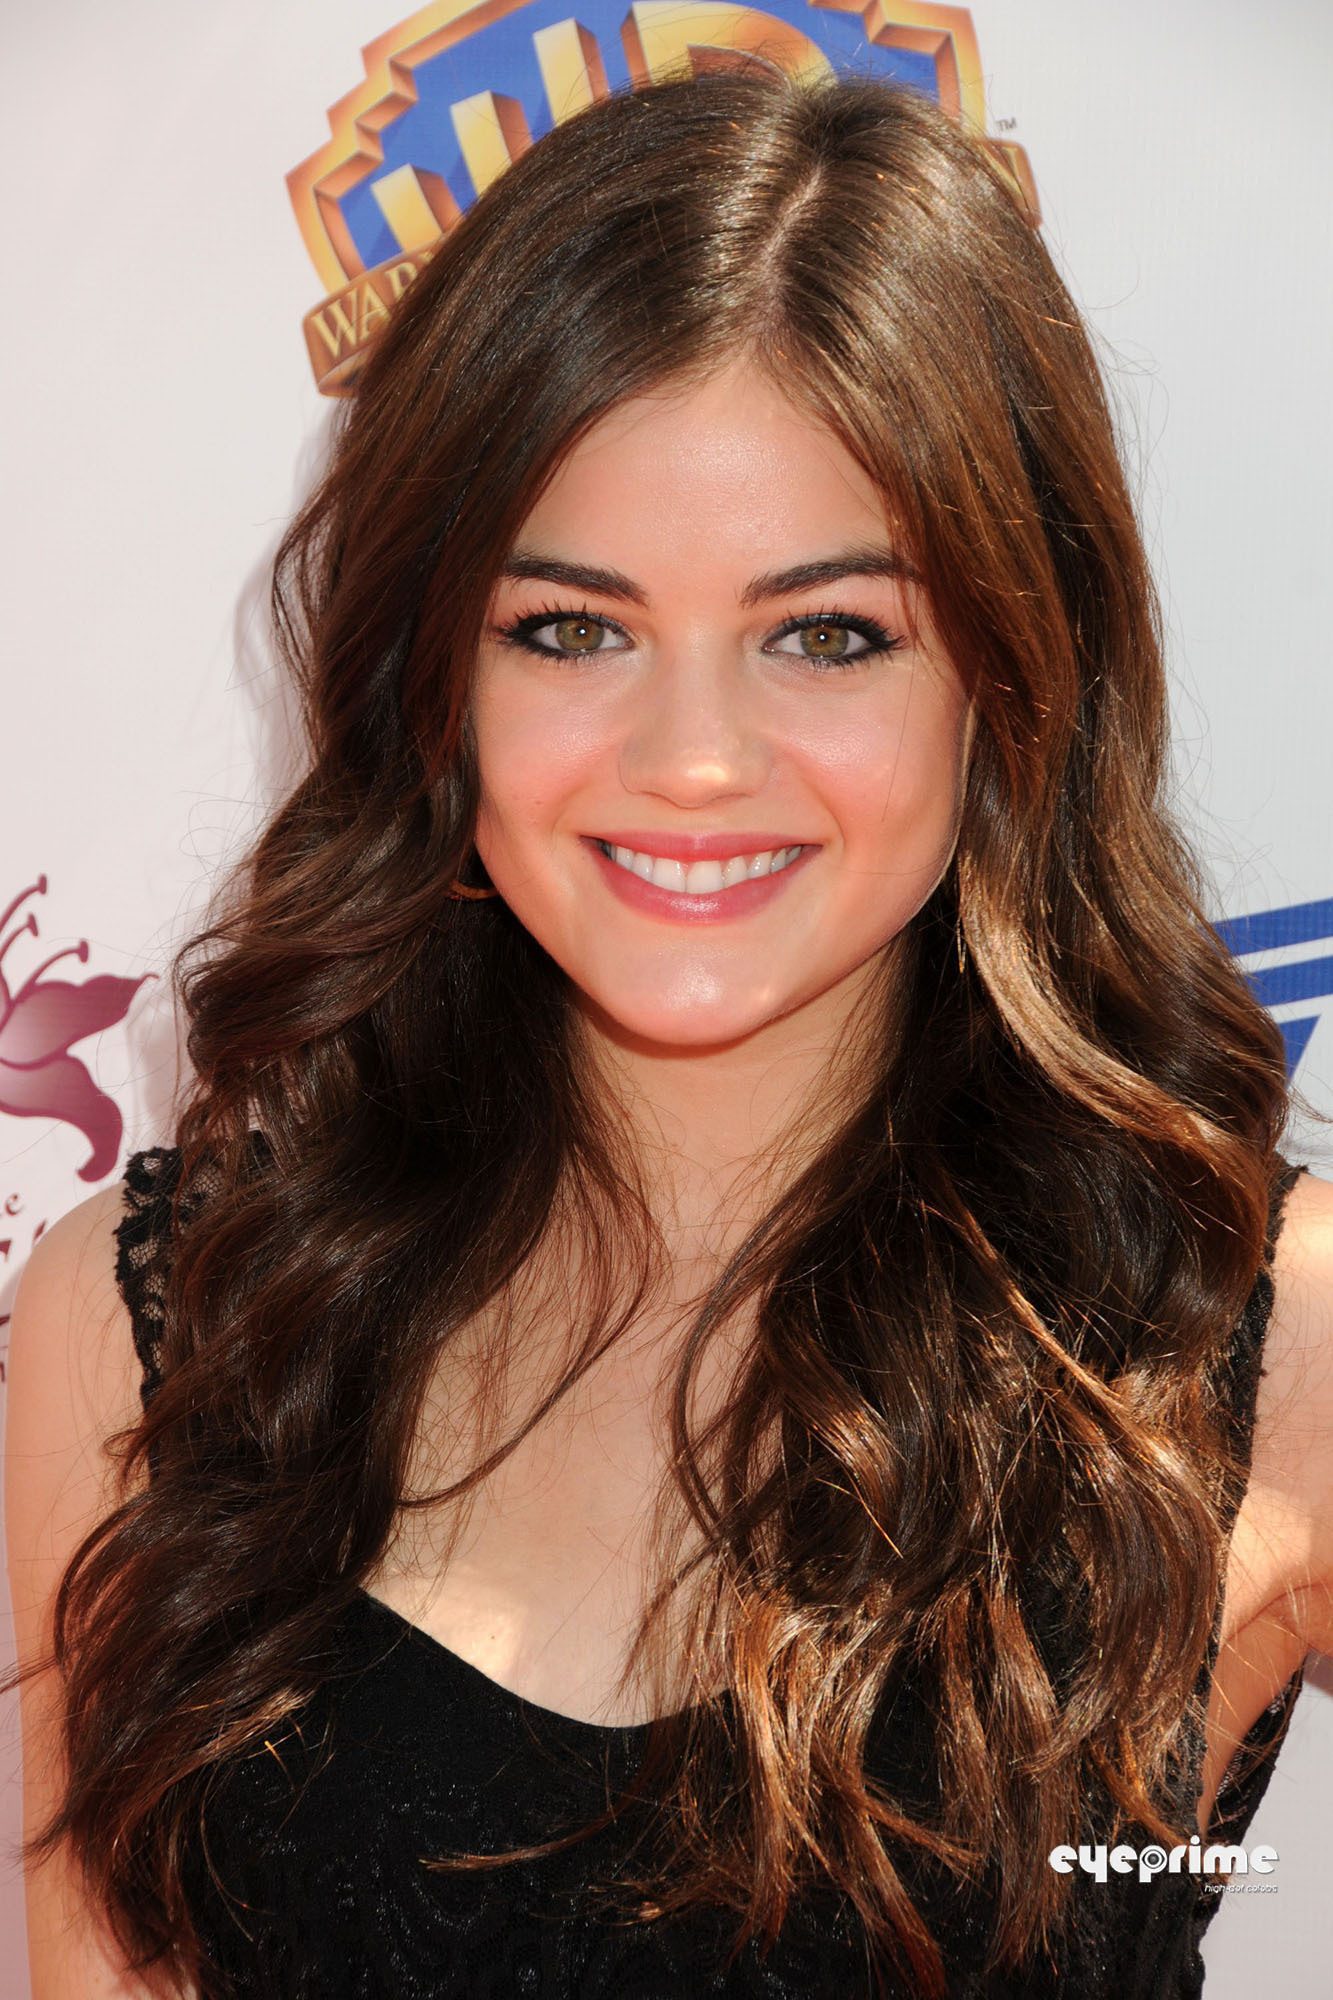 Lucy Hale - Lucy Hale Photo (16045926) - Fanpop fanclubs